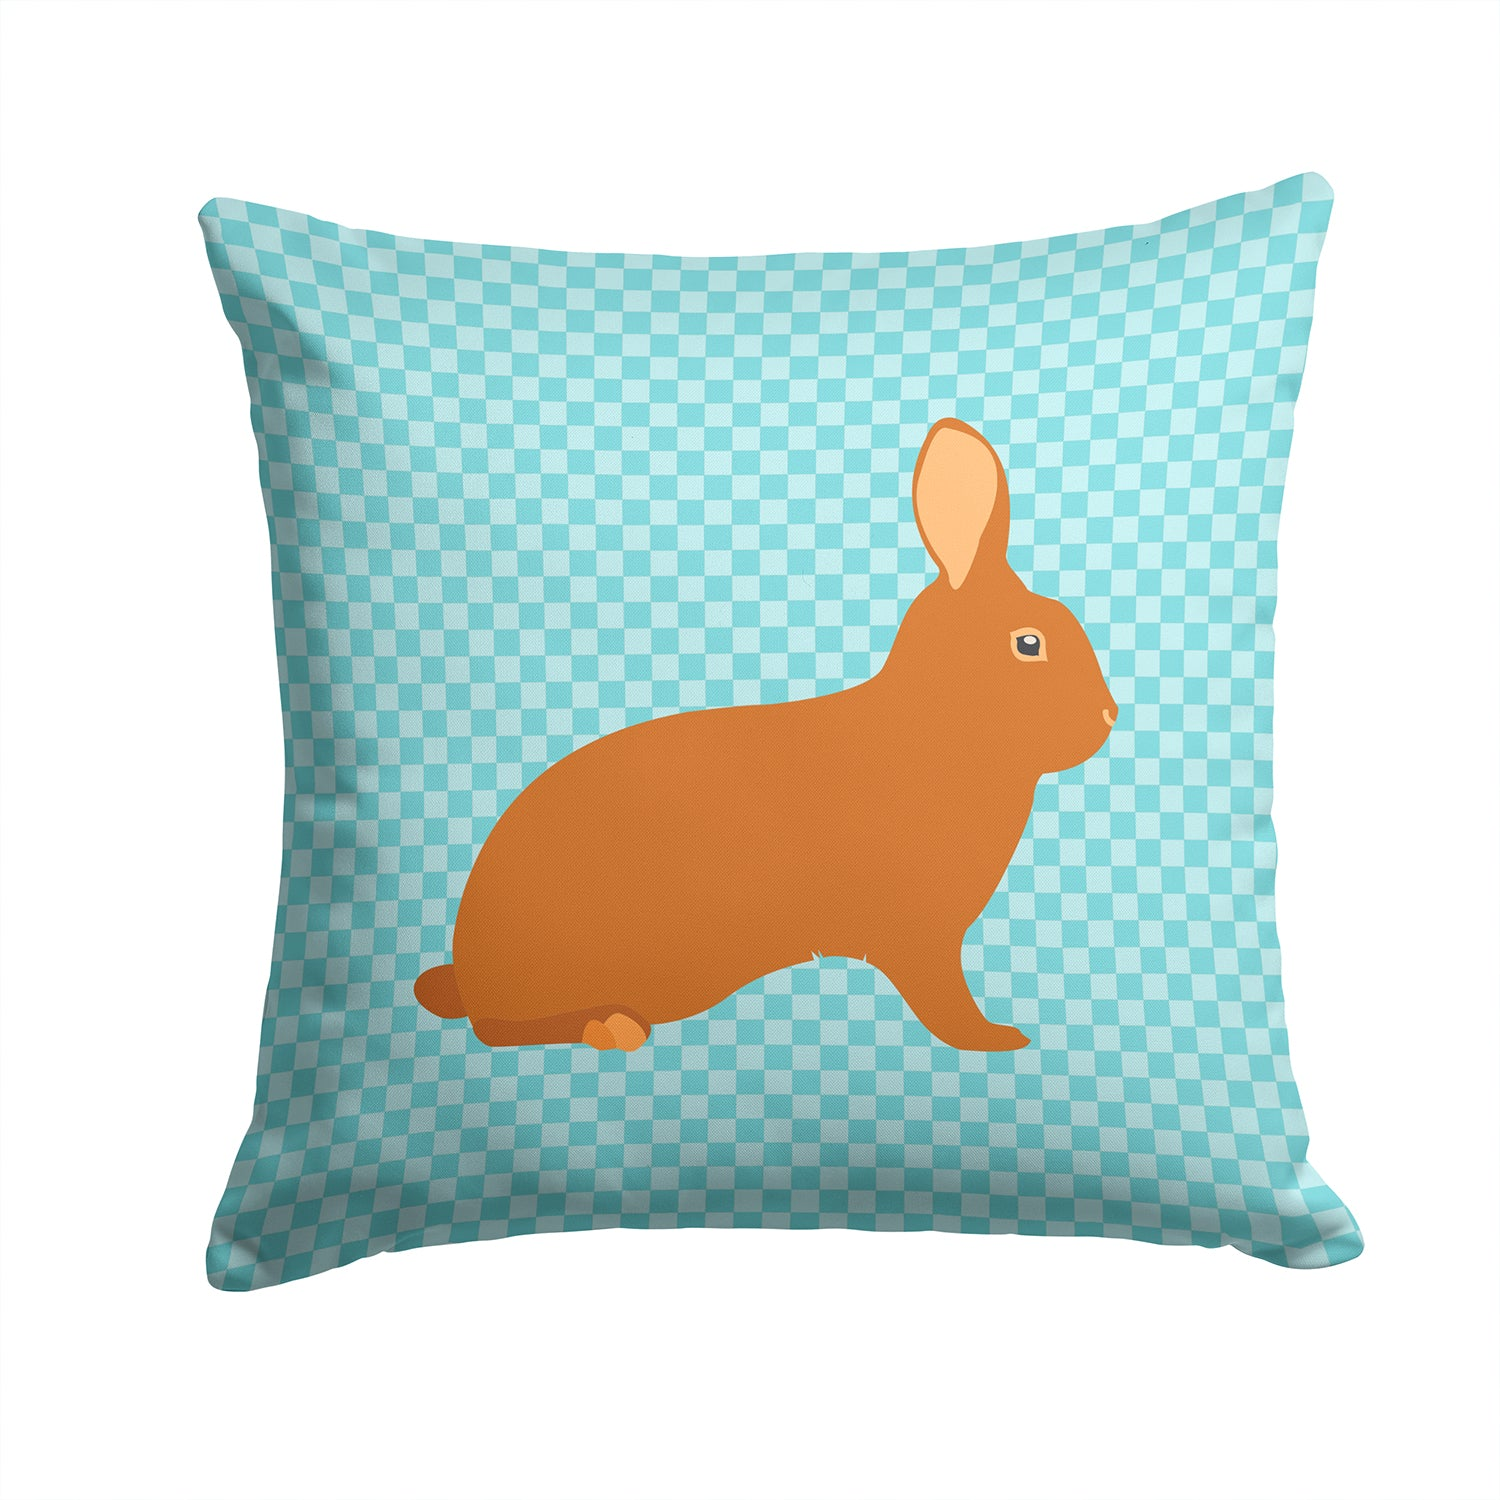 Rex Rabbit Blue Check Fabric Decorative Pillow BB8143PW1414 by Caroline's Treasures